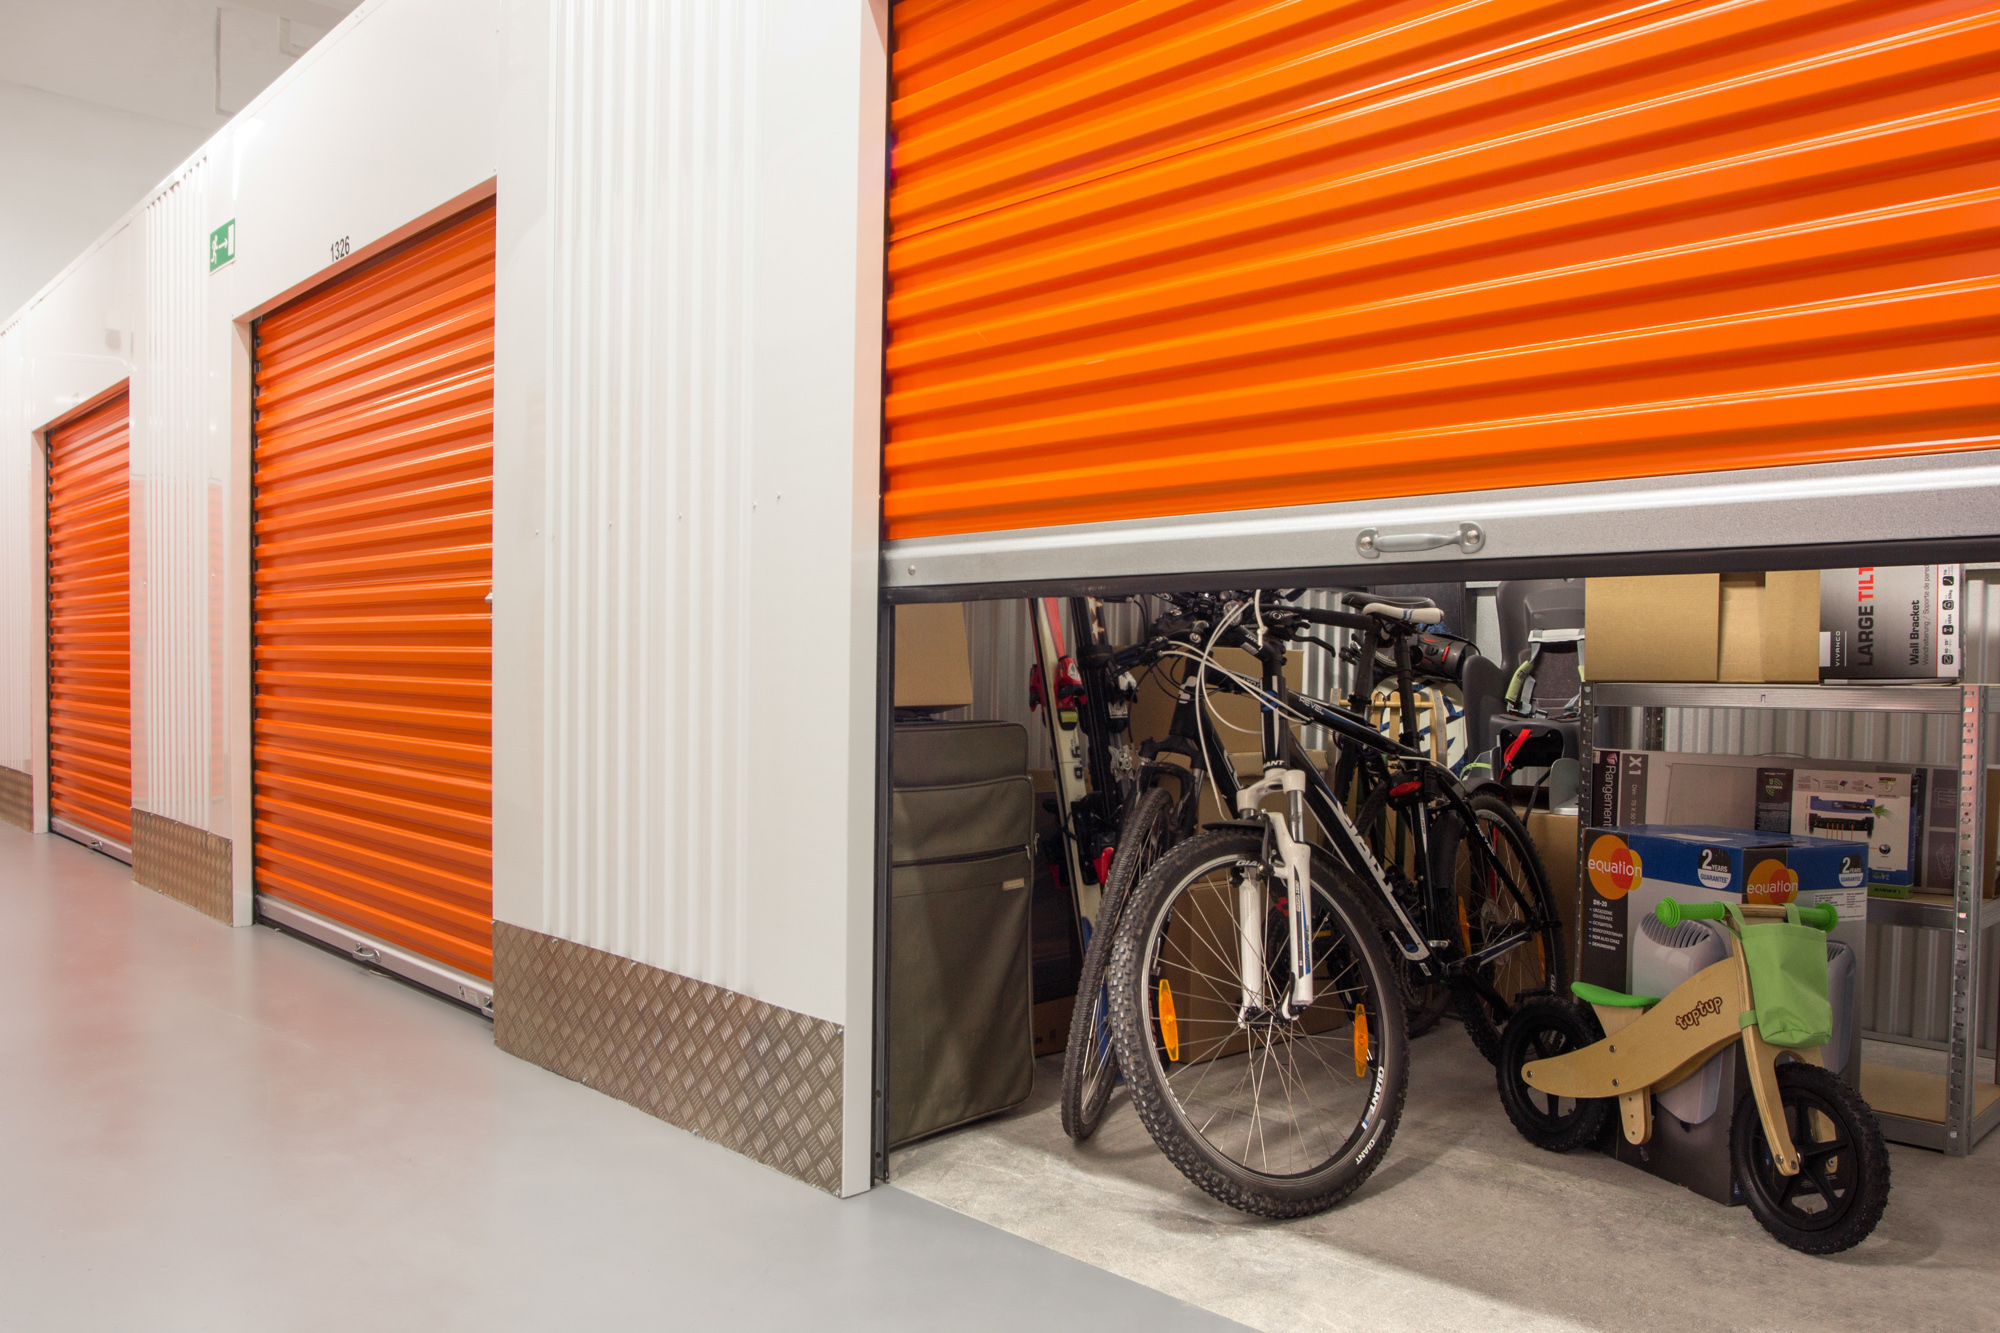 self-storage unit facility